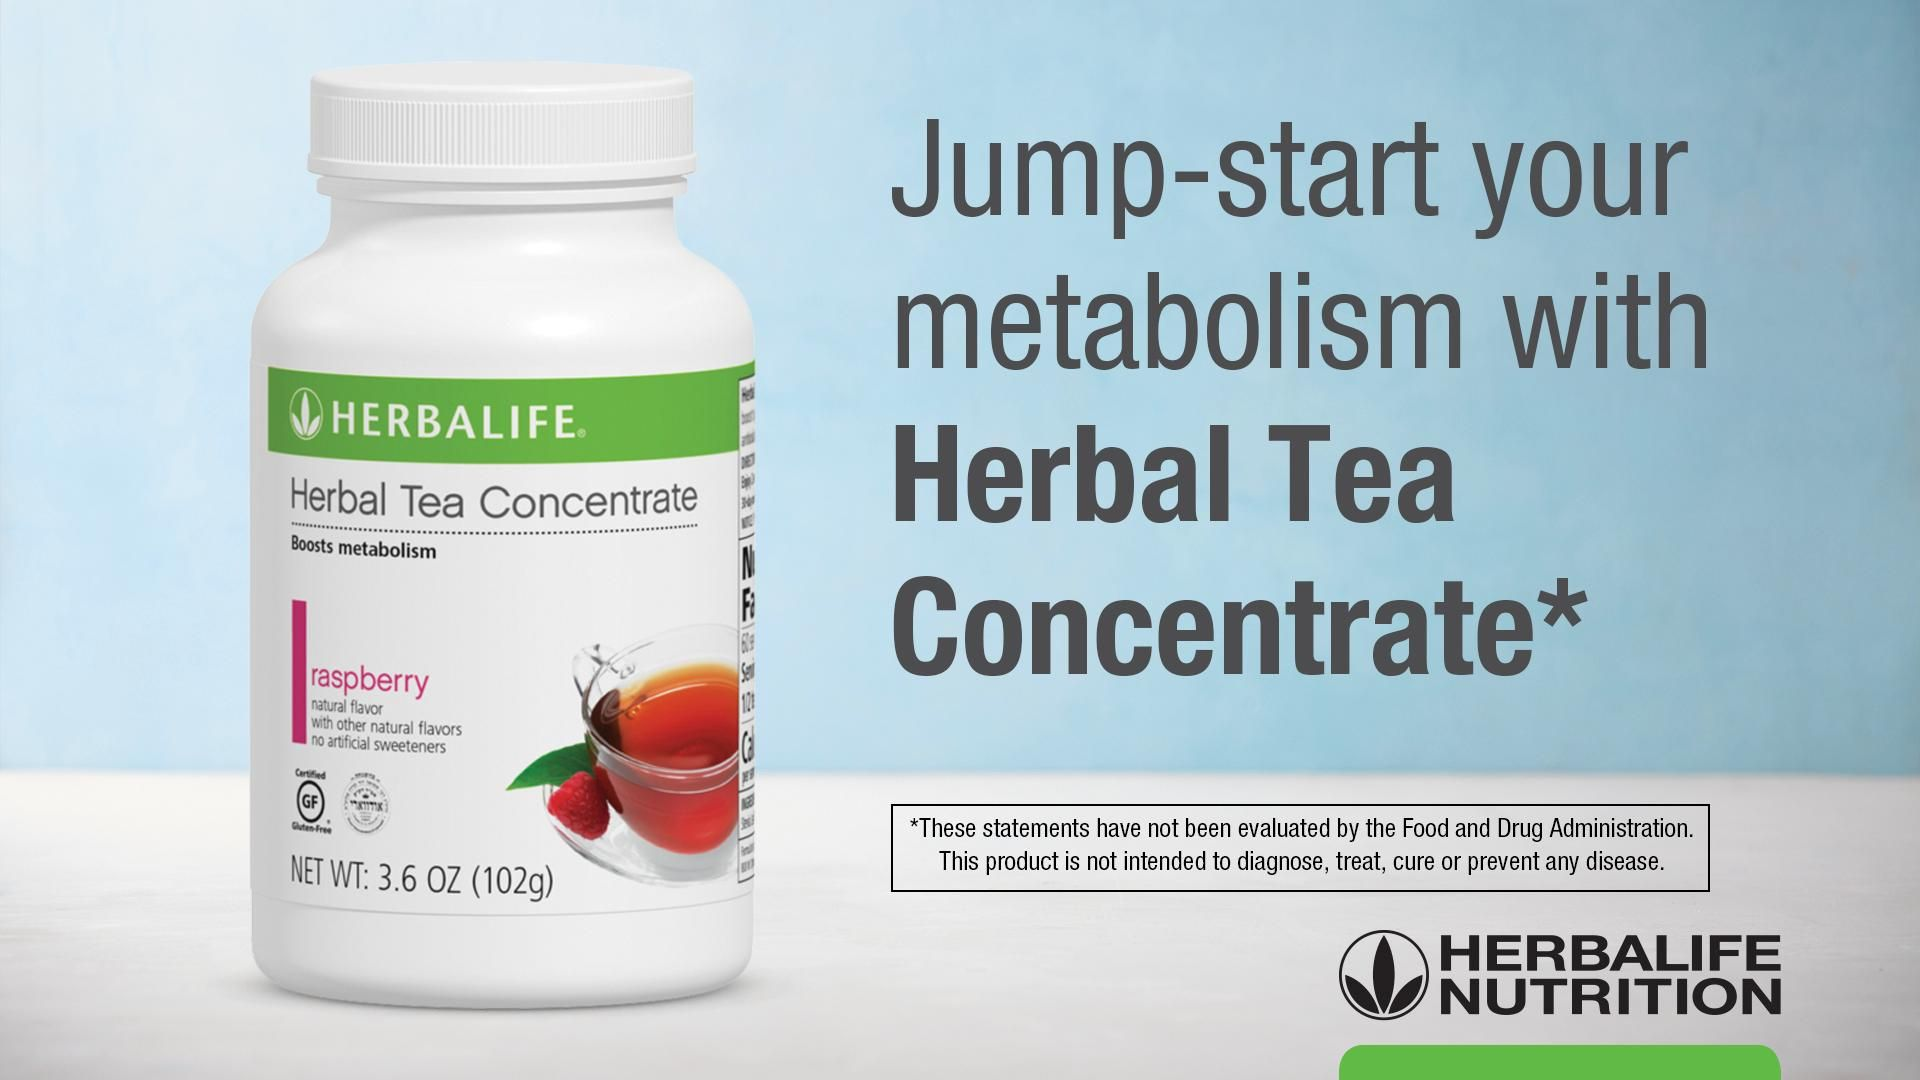 Herbal Tea Concentrate: Know the Products